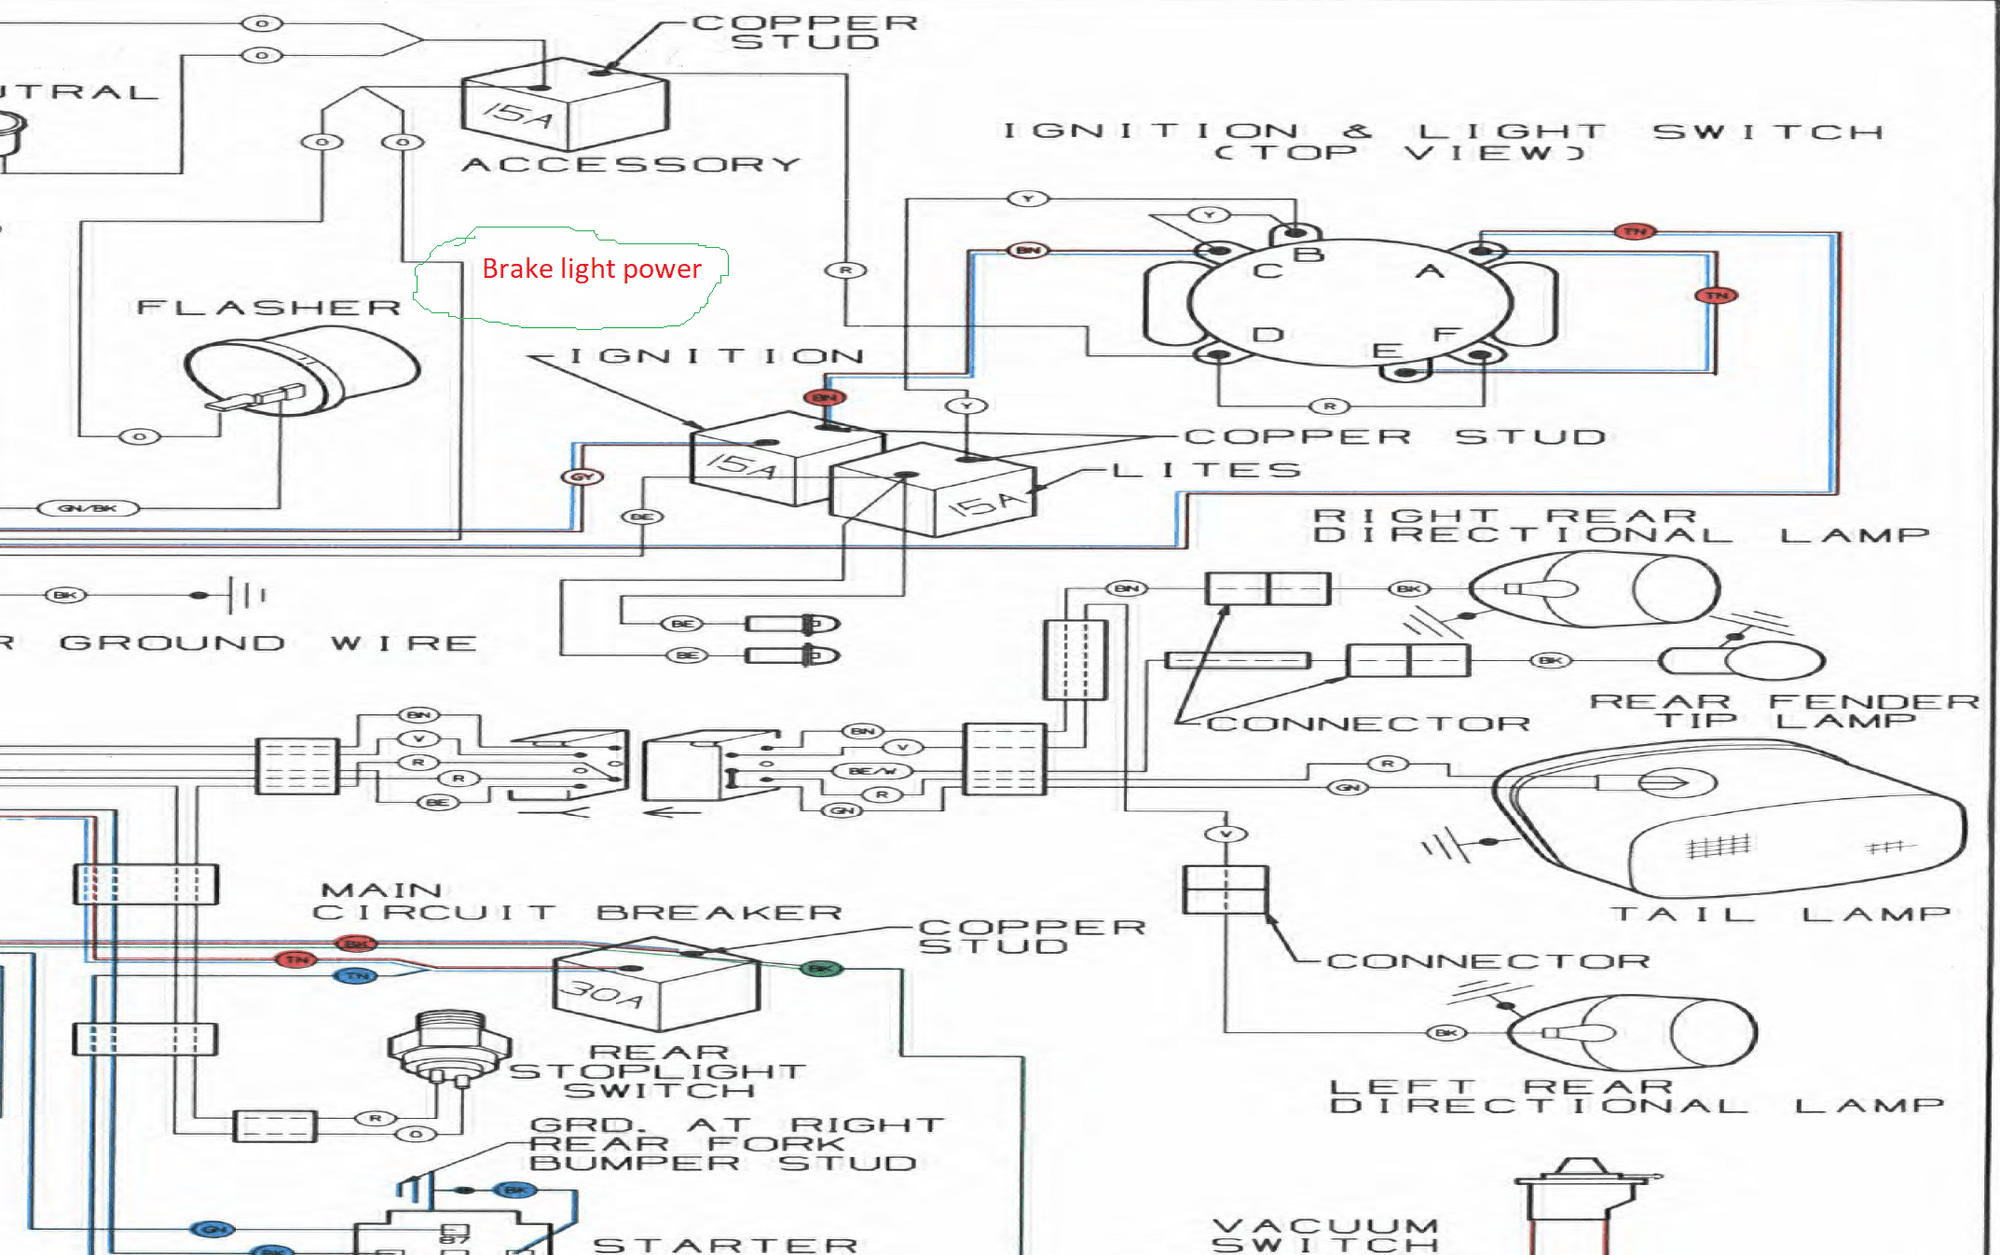 97 softail wiring diagram